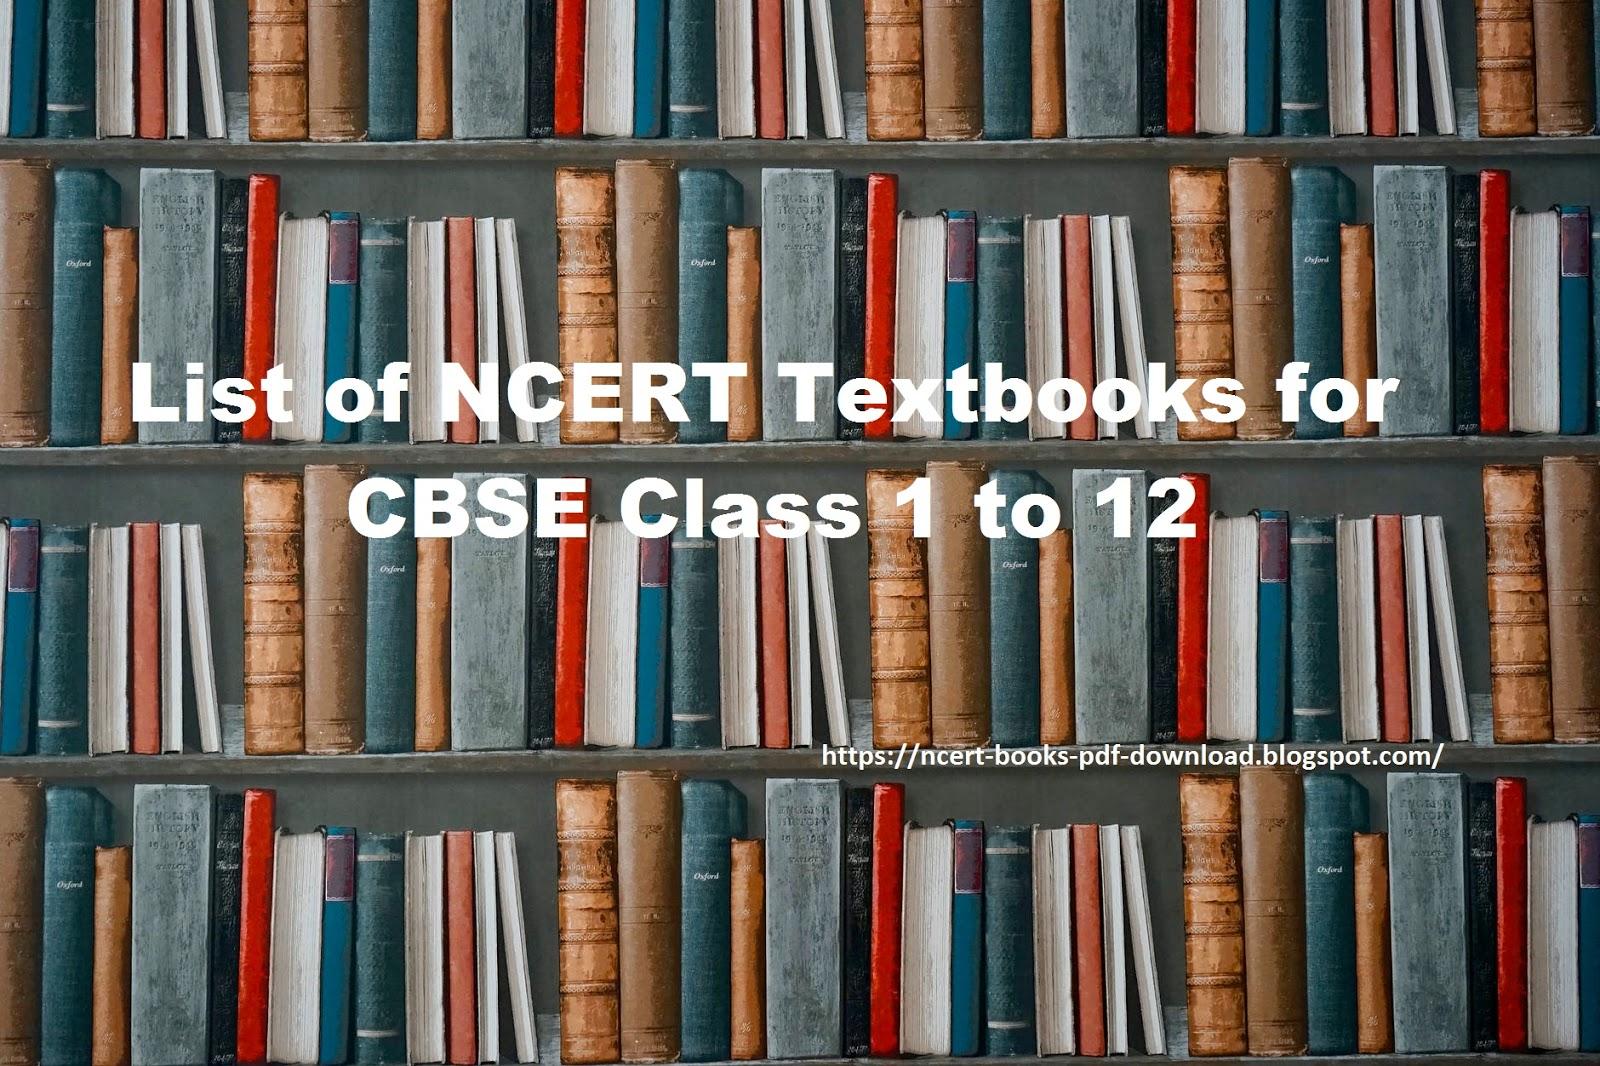 On this page of NCERT Books PDF Download we provide you full List Of All NCERT Textbooks from cbse calss 1 to 12 with their class, code, name and price for all subjects in all three major medium hindi, english, and urdu.